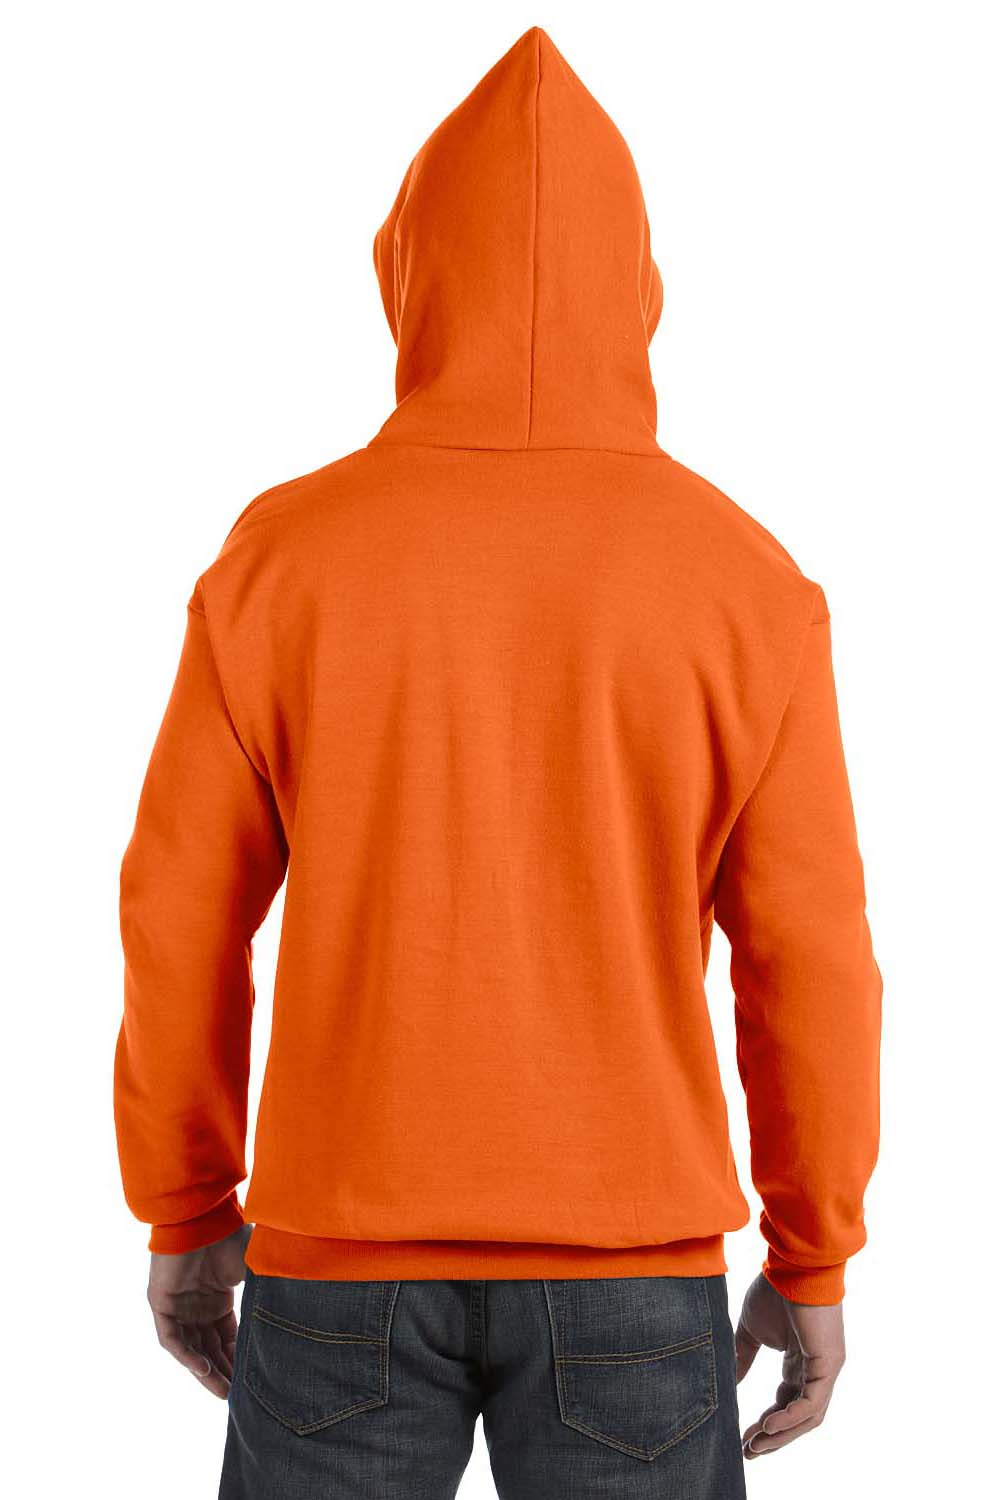 Hanes P170 Mens EcoSmart Print Pro XP Hooded Sweatshirt Hoodie Orange Back